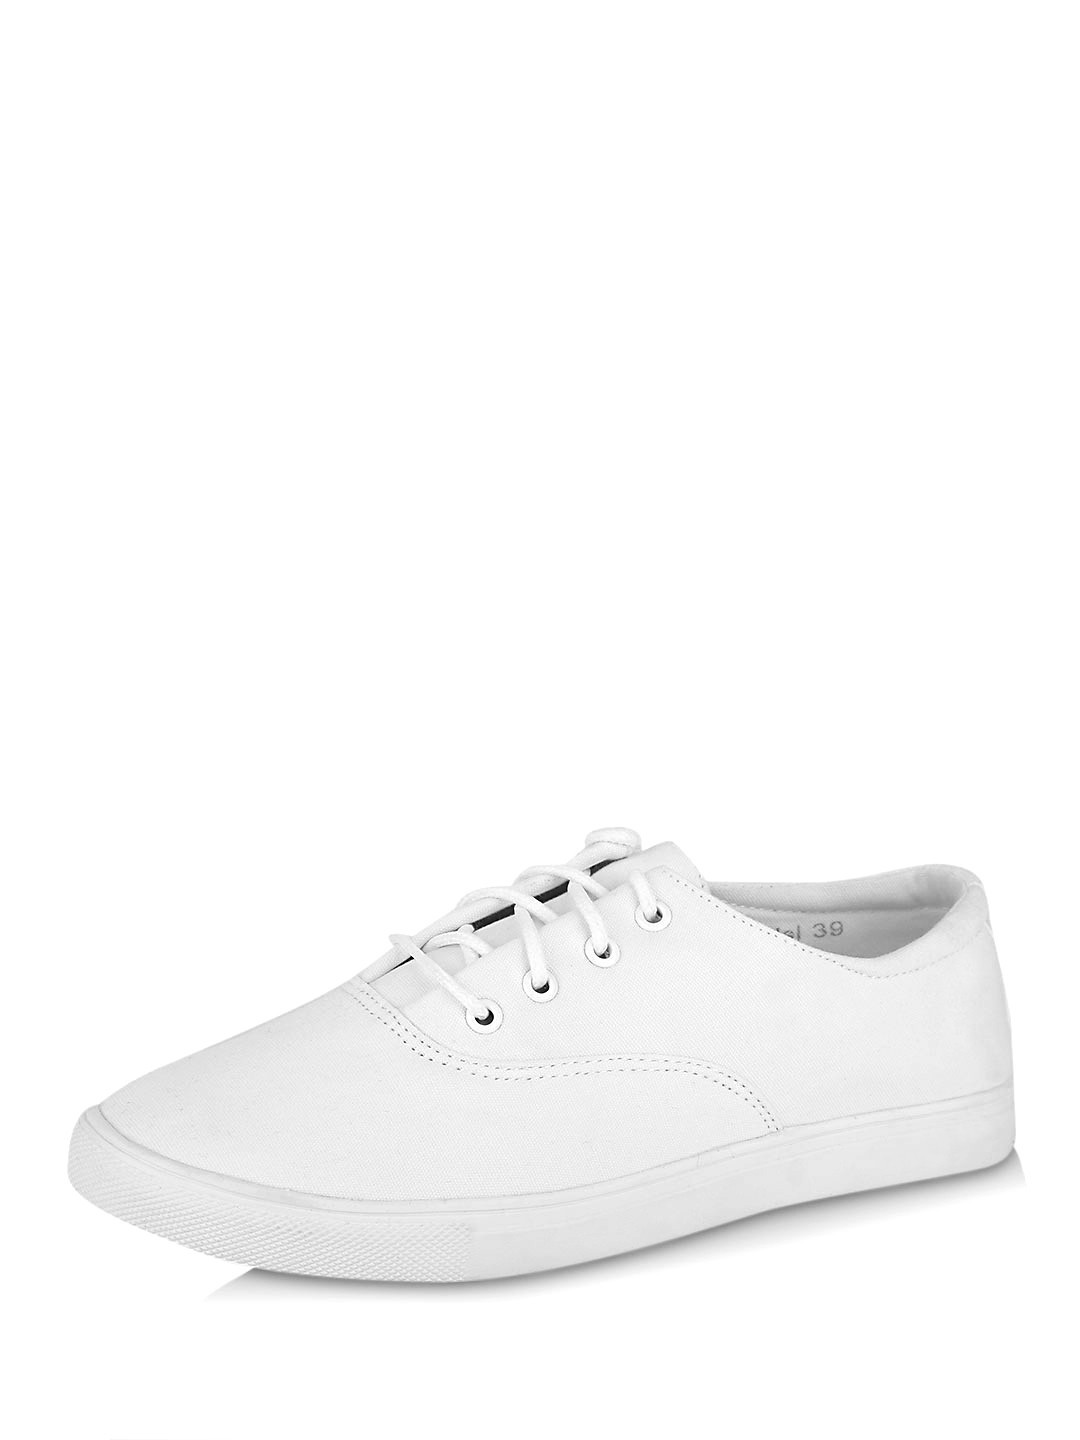 Buy My Foot Couture White My Foot Lace Up Tennis Shoes For Girls Online -5631